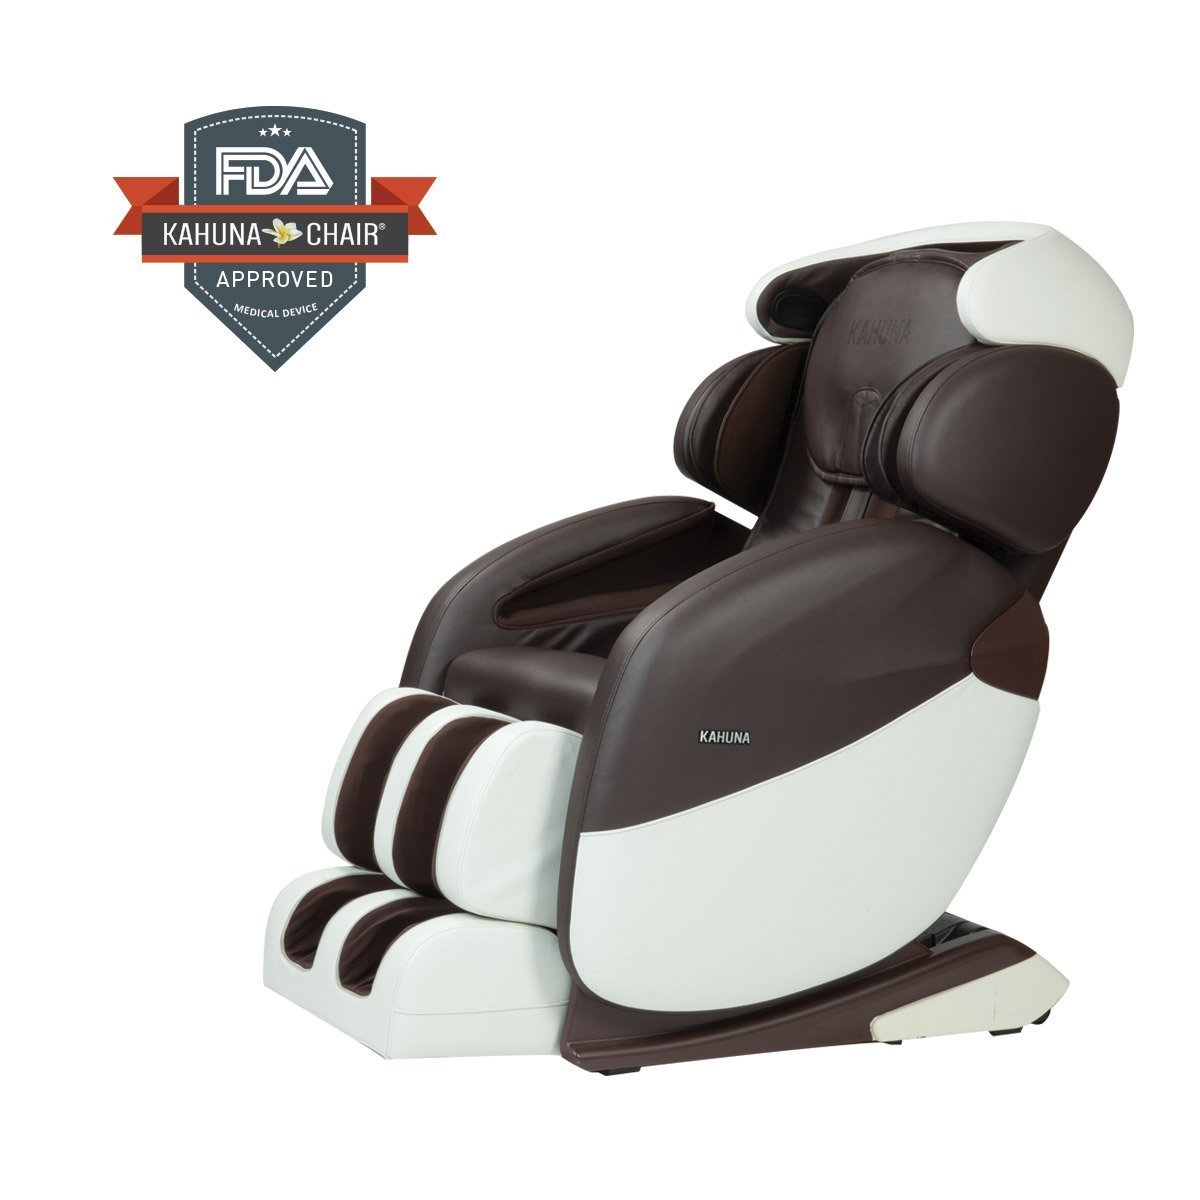 vip chair products pro executive chairs massage titan